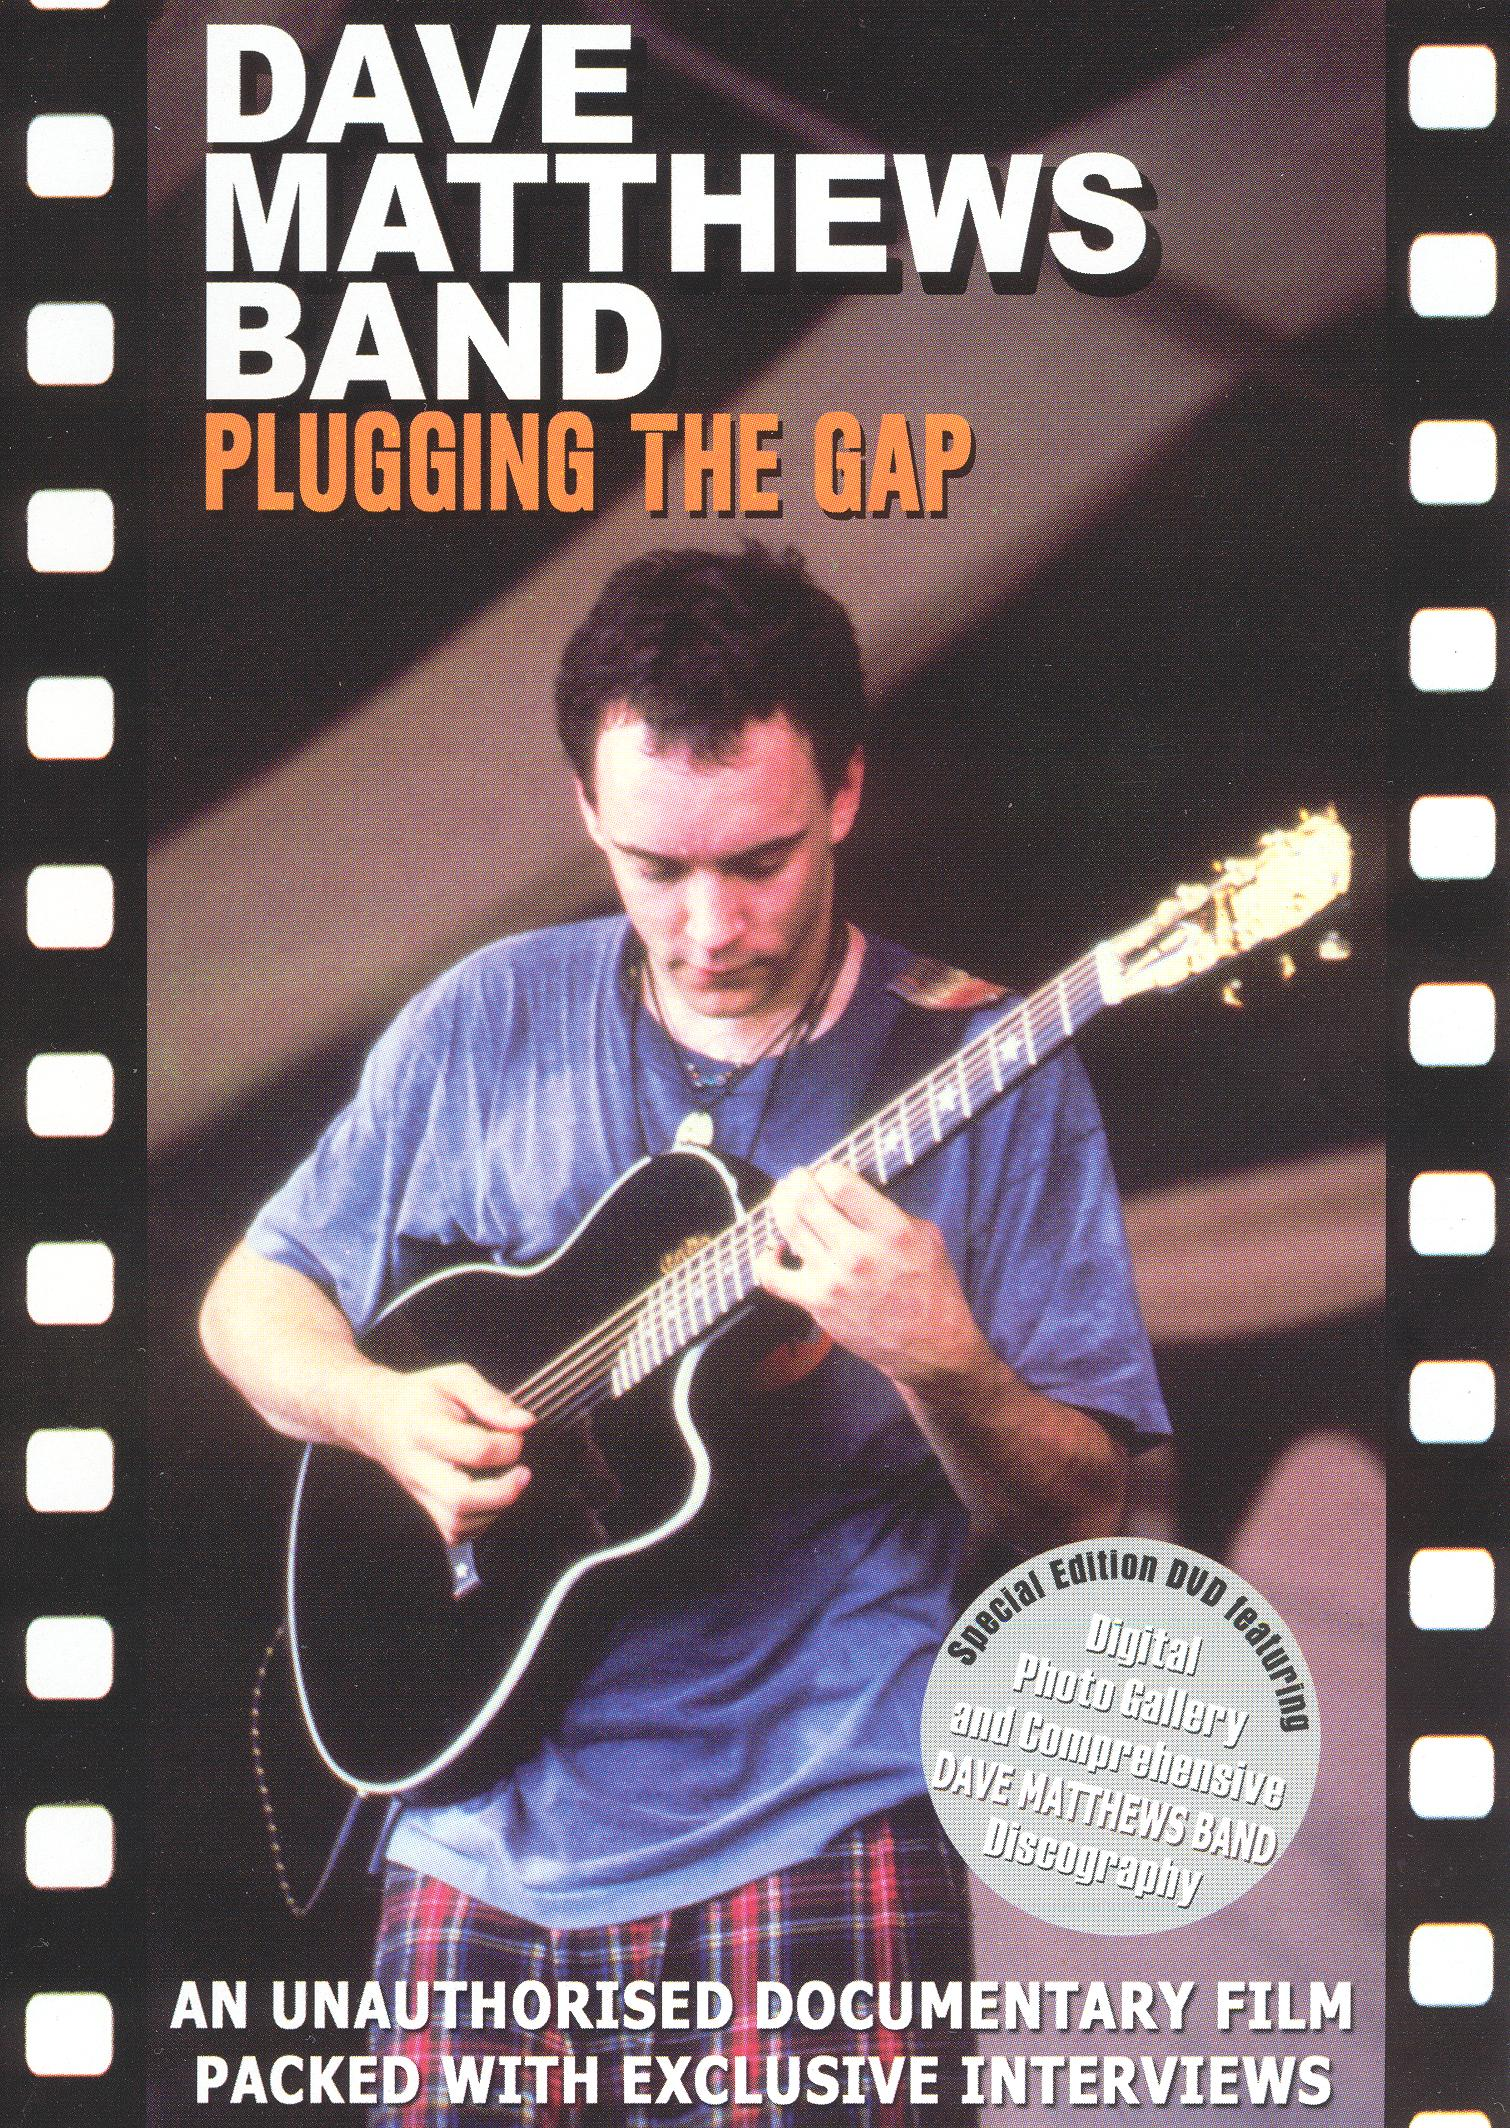 The Dave Matthews Band: Plugging the Gap